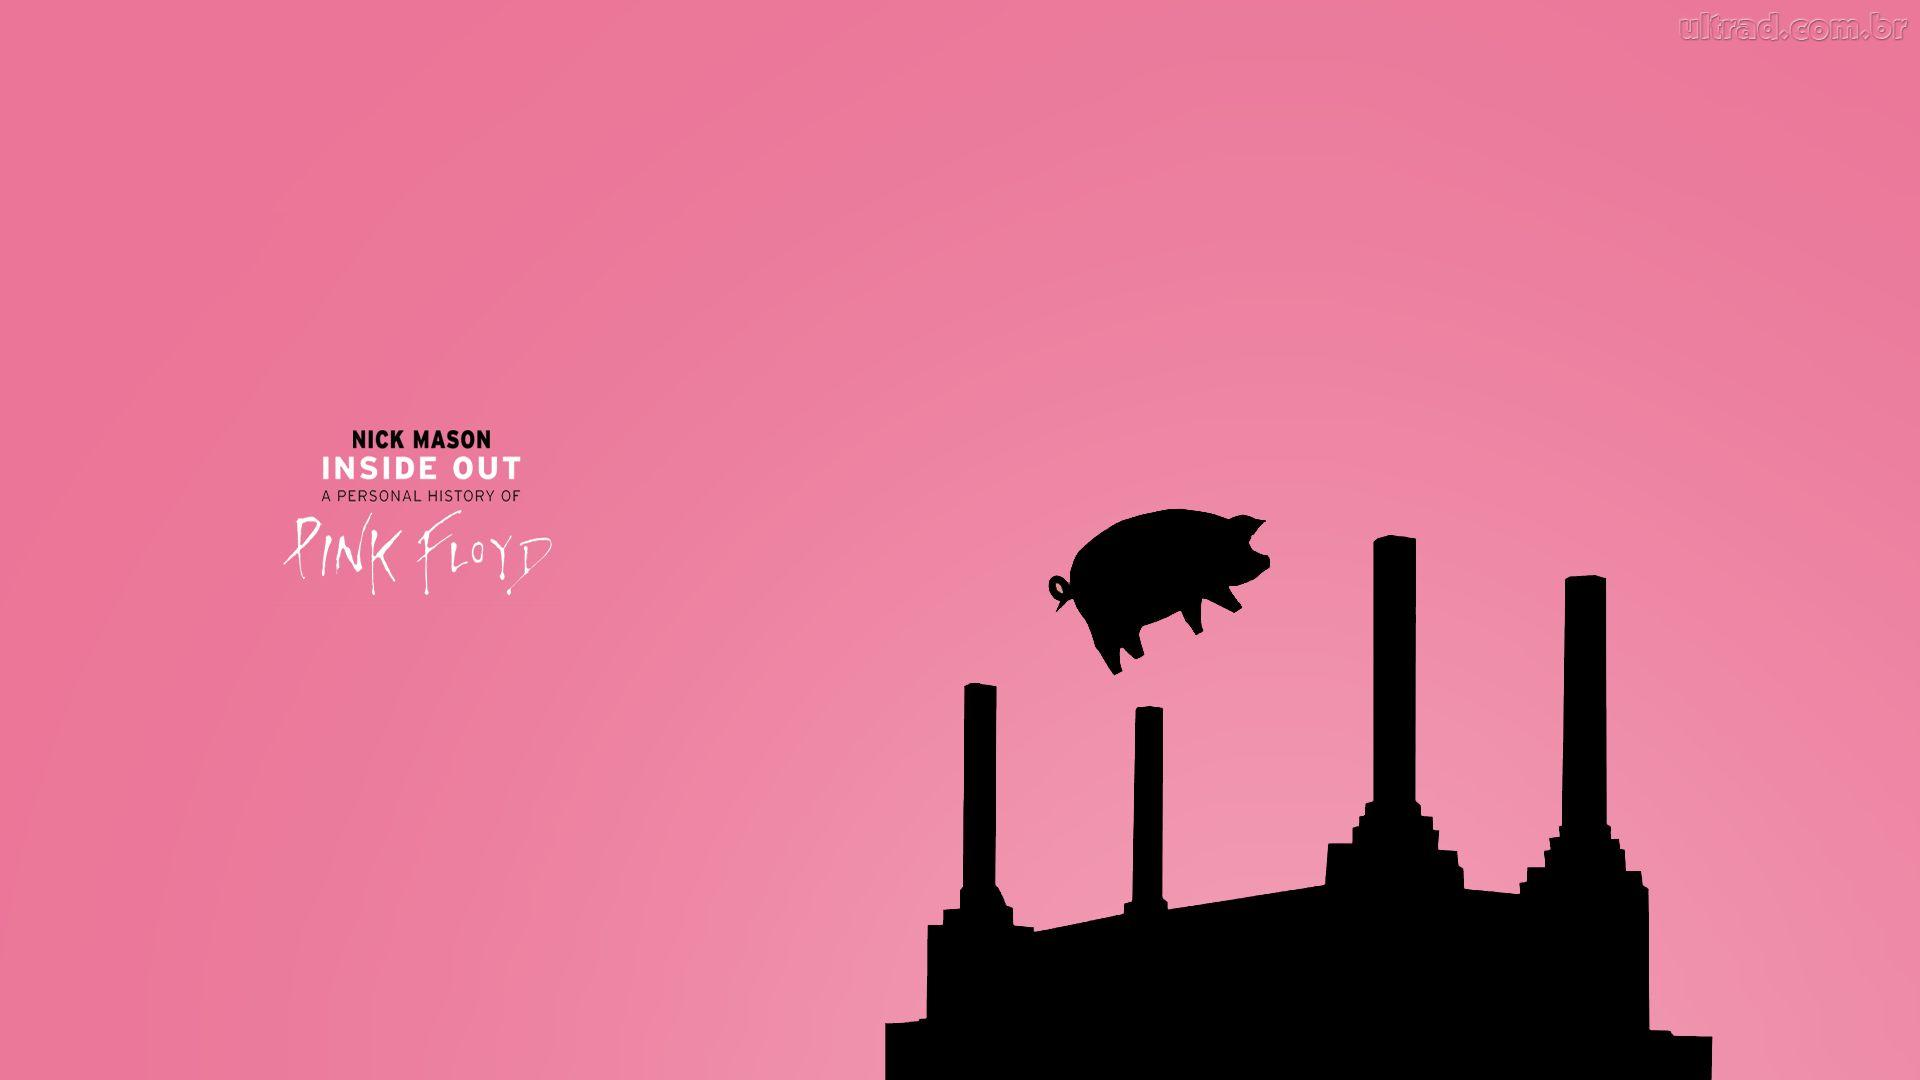 Pink floyd animals - Images For Animals Pink Floyd Wallpaper